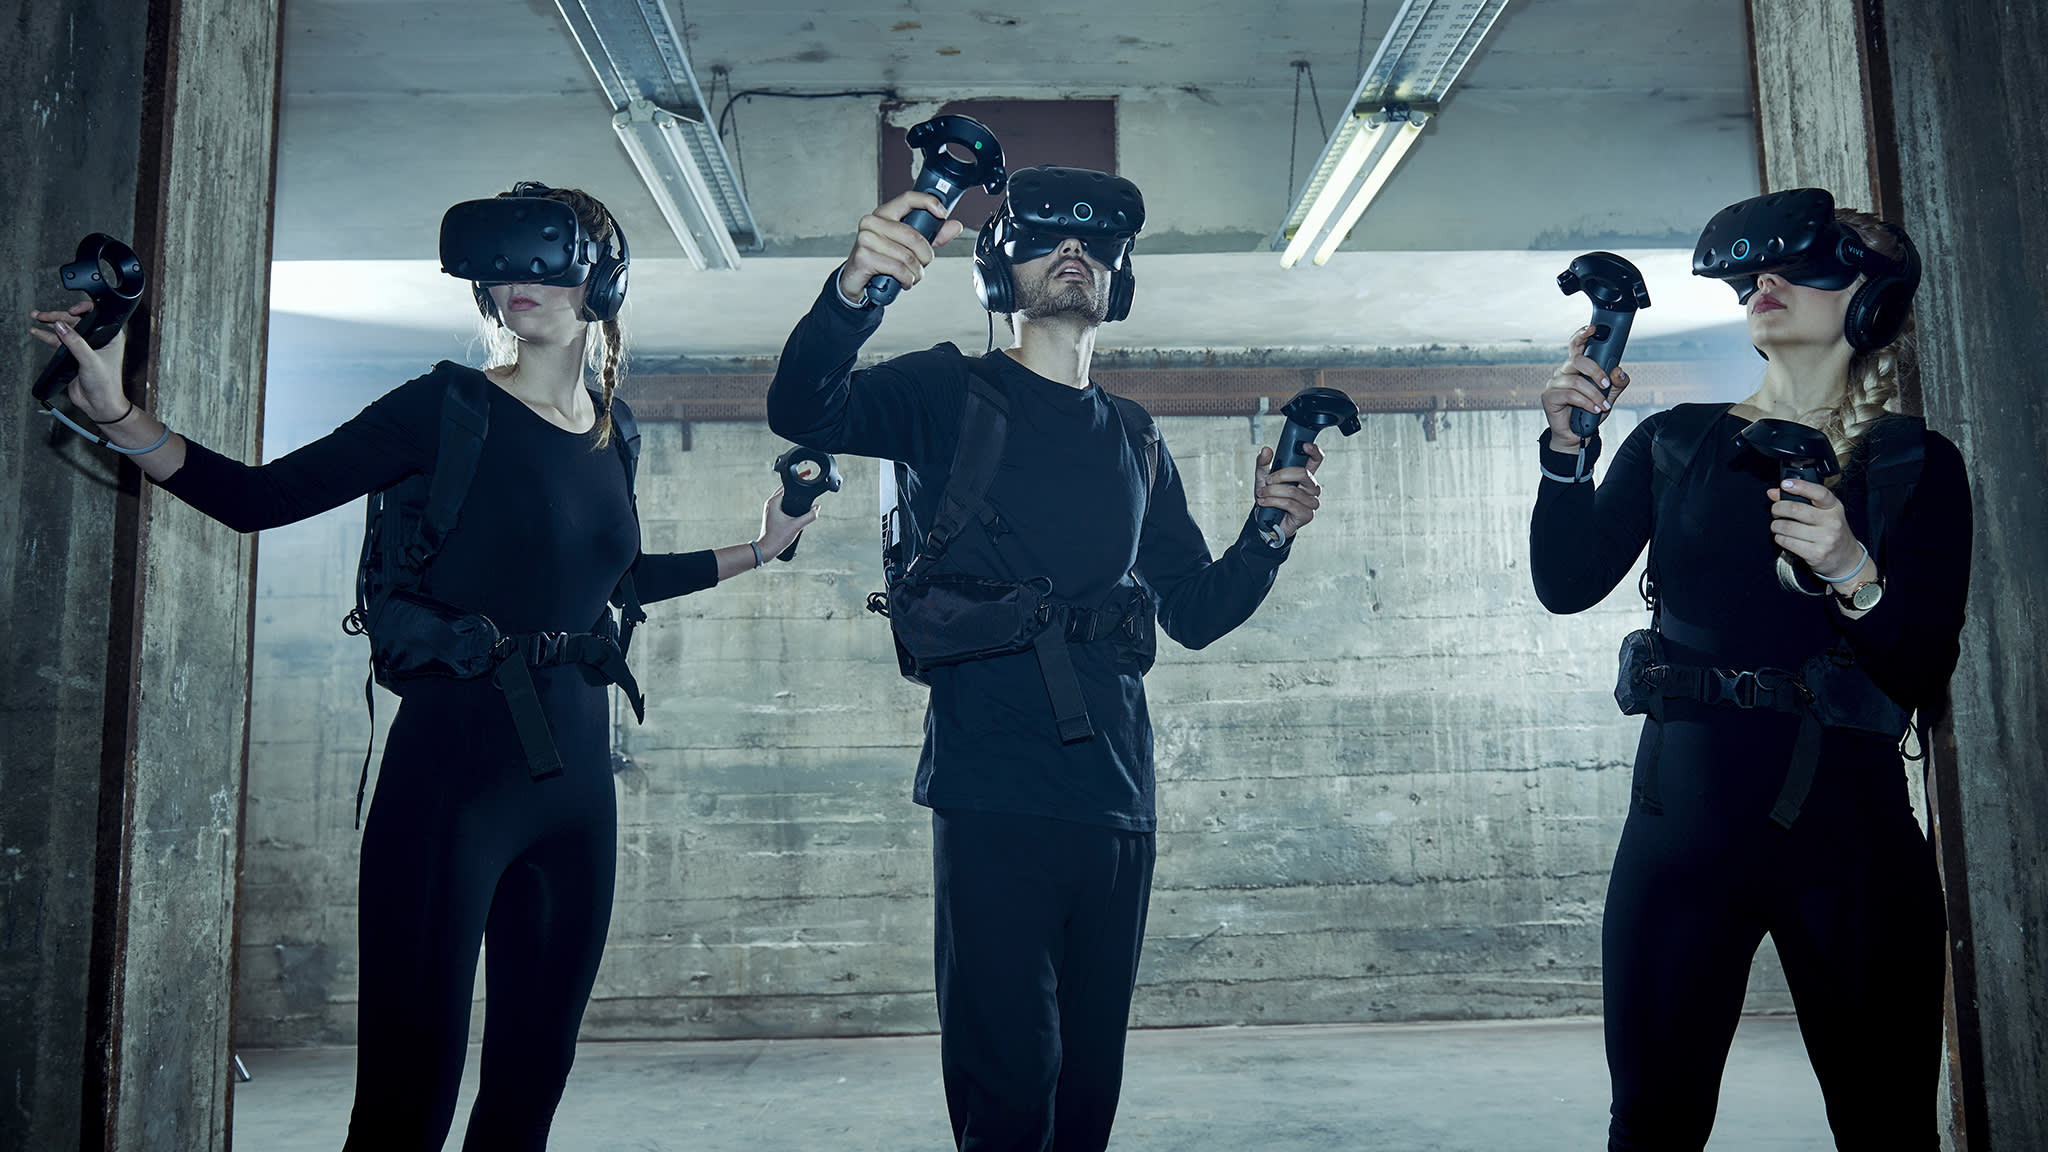 Virtual reality prepares business students for digital leadership | Financial Times